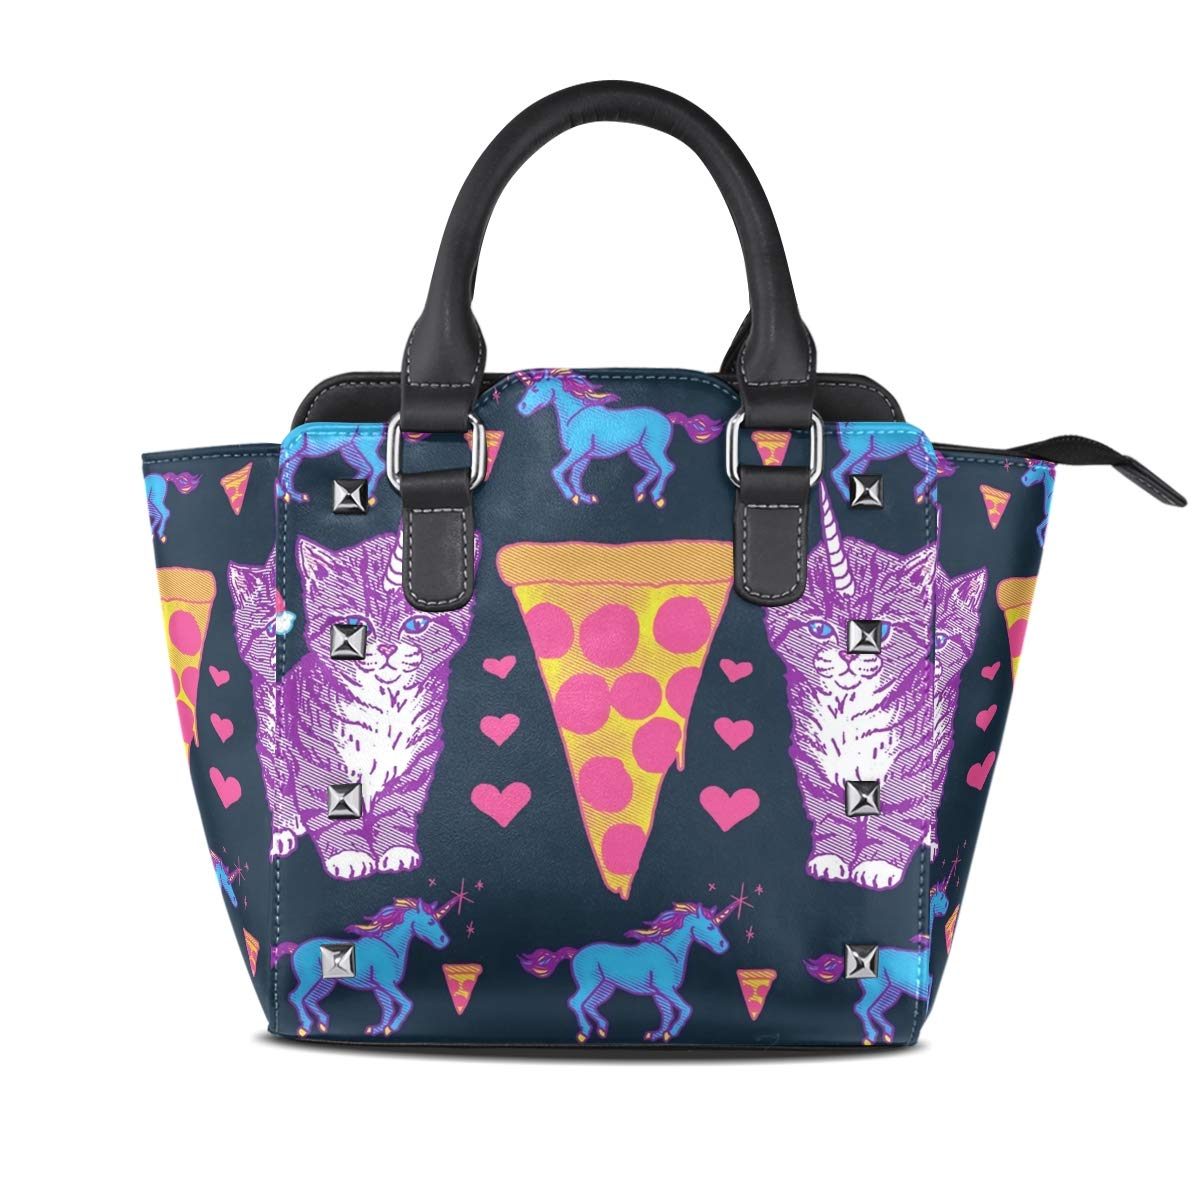 Design1 Handbag LongHorned Cat And Unicorn Genuine Leather Tote Rivet Bag Shoulder Strap Top Handle Women